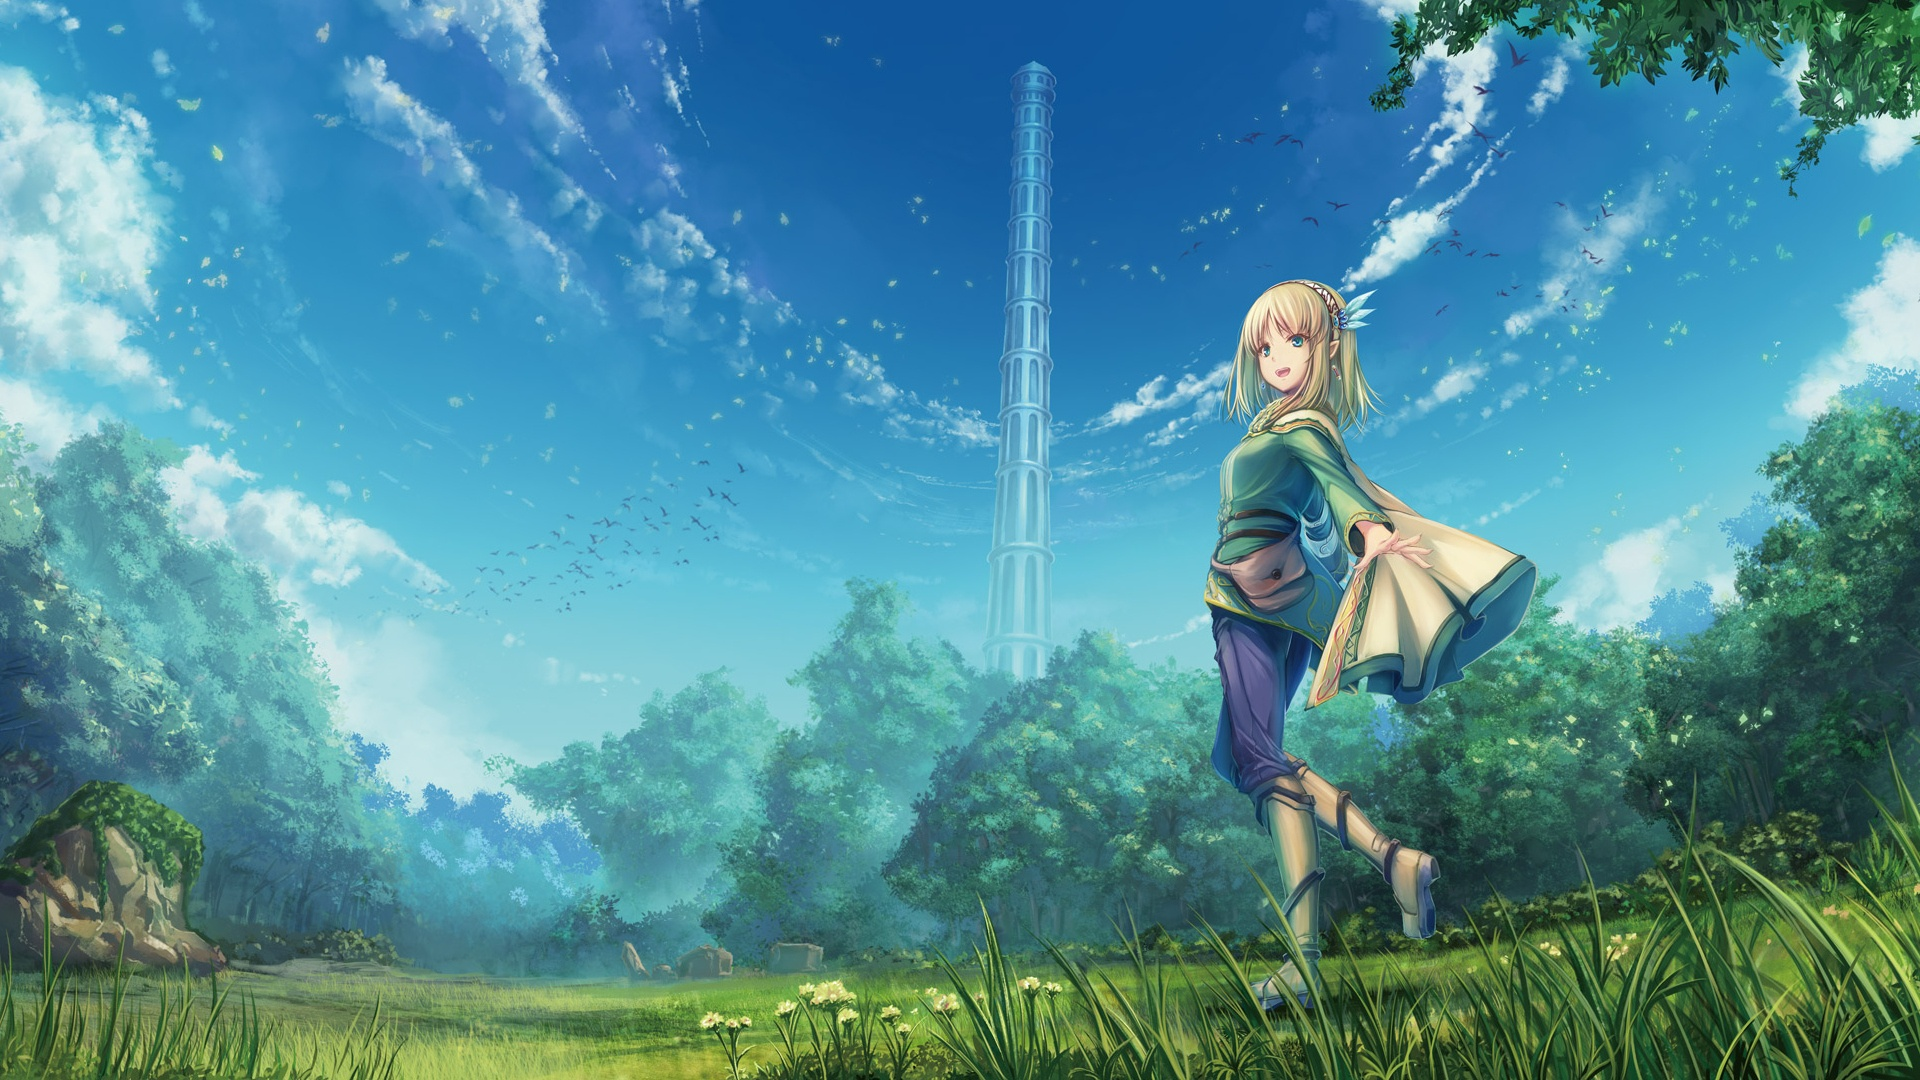 Anime Landscape With Clouds best wallpaper